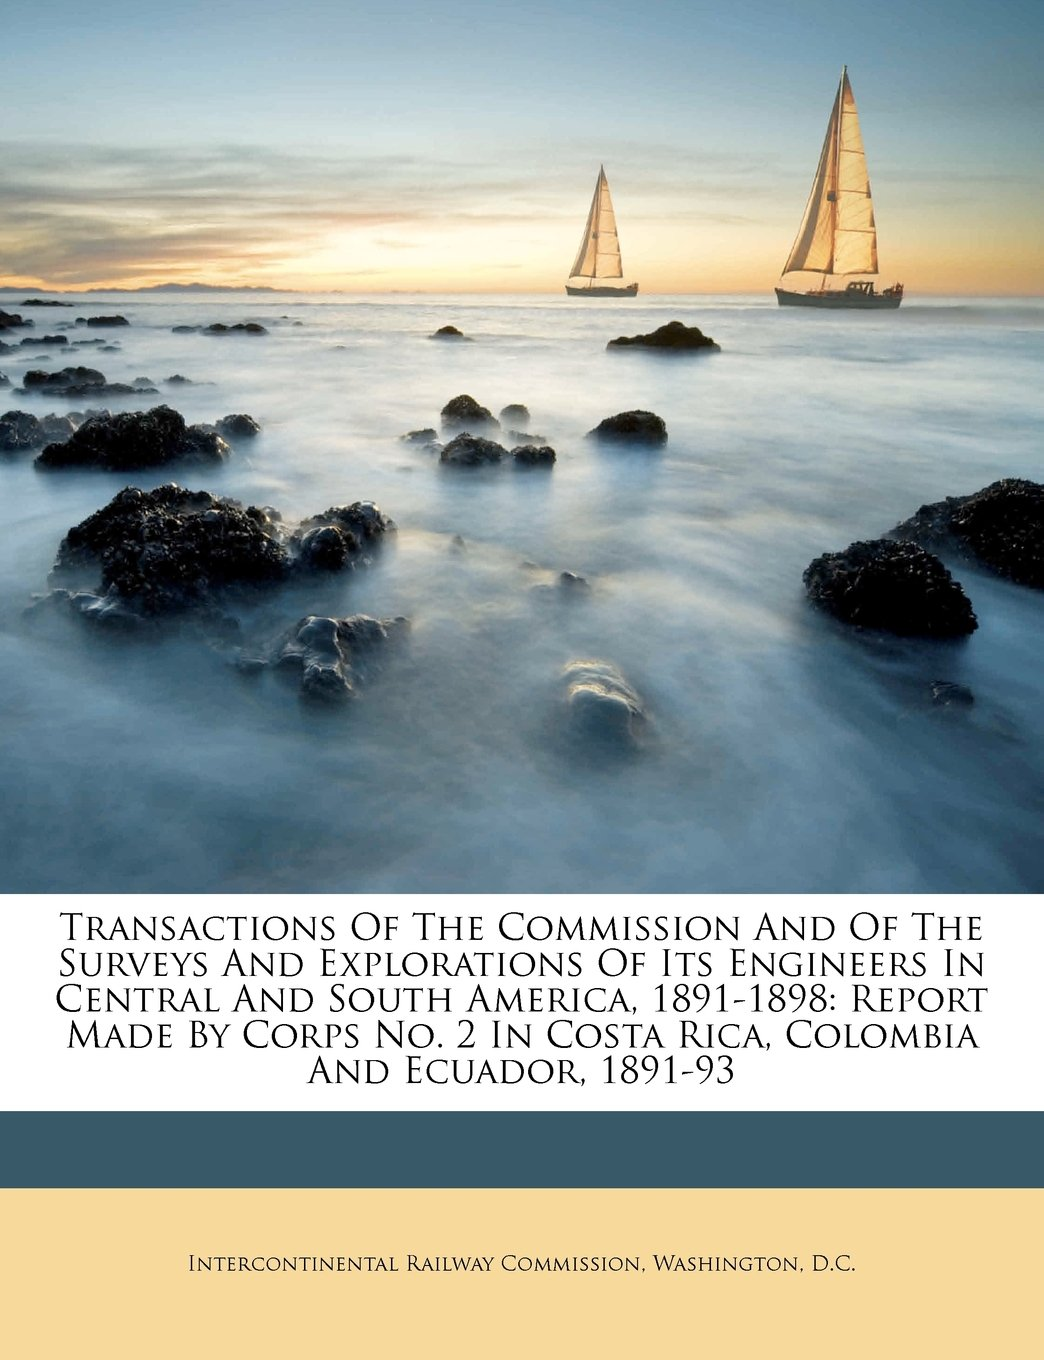 Transactions Of The Commission And Of The Surveys And Explorations Of Its Engineers In Central And South America, 1891-1898: Report Made By Corps No. ... And Ecuador, 1891-93 (Spanish Edition)